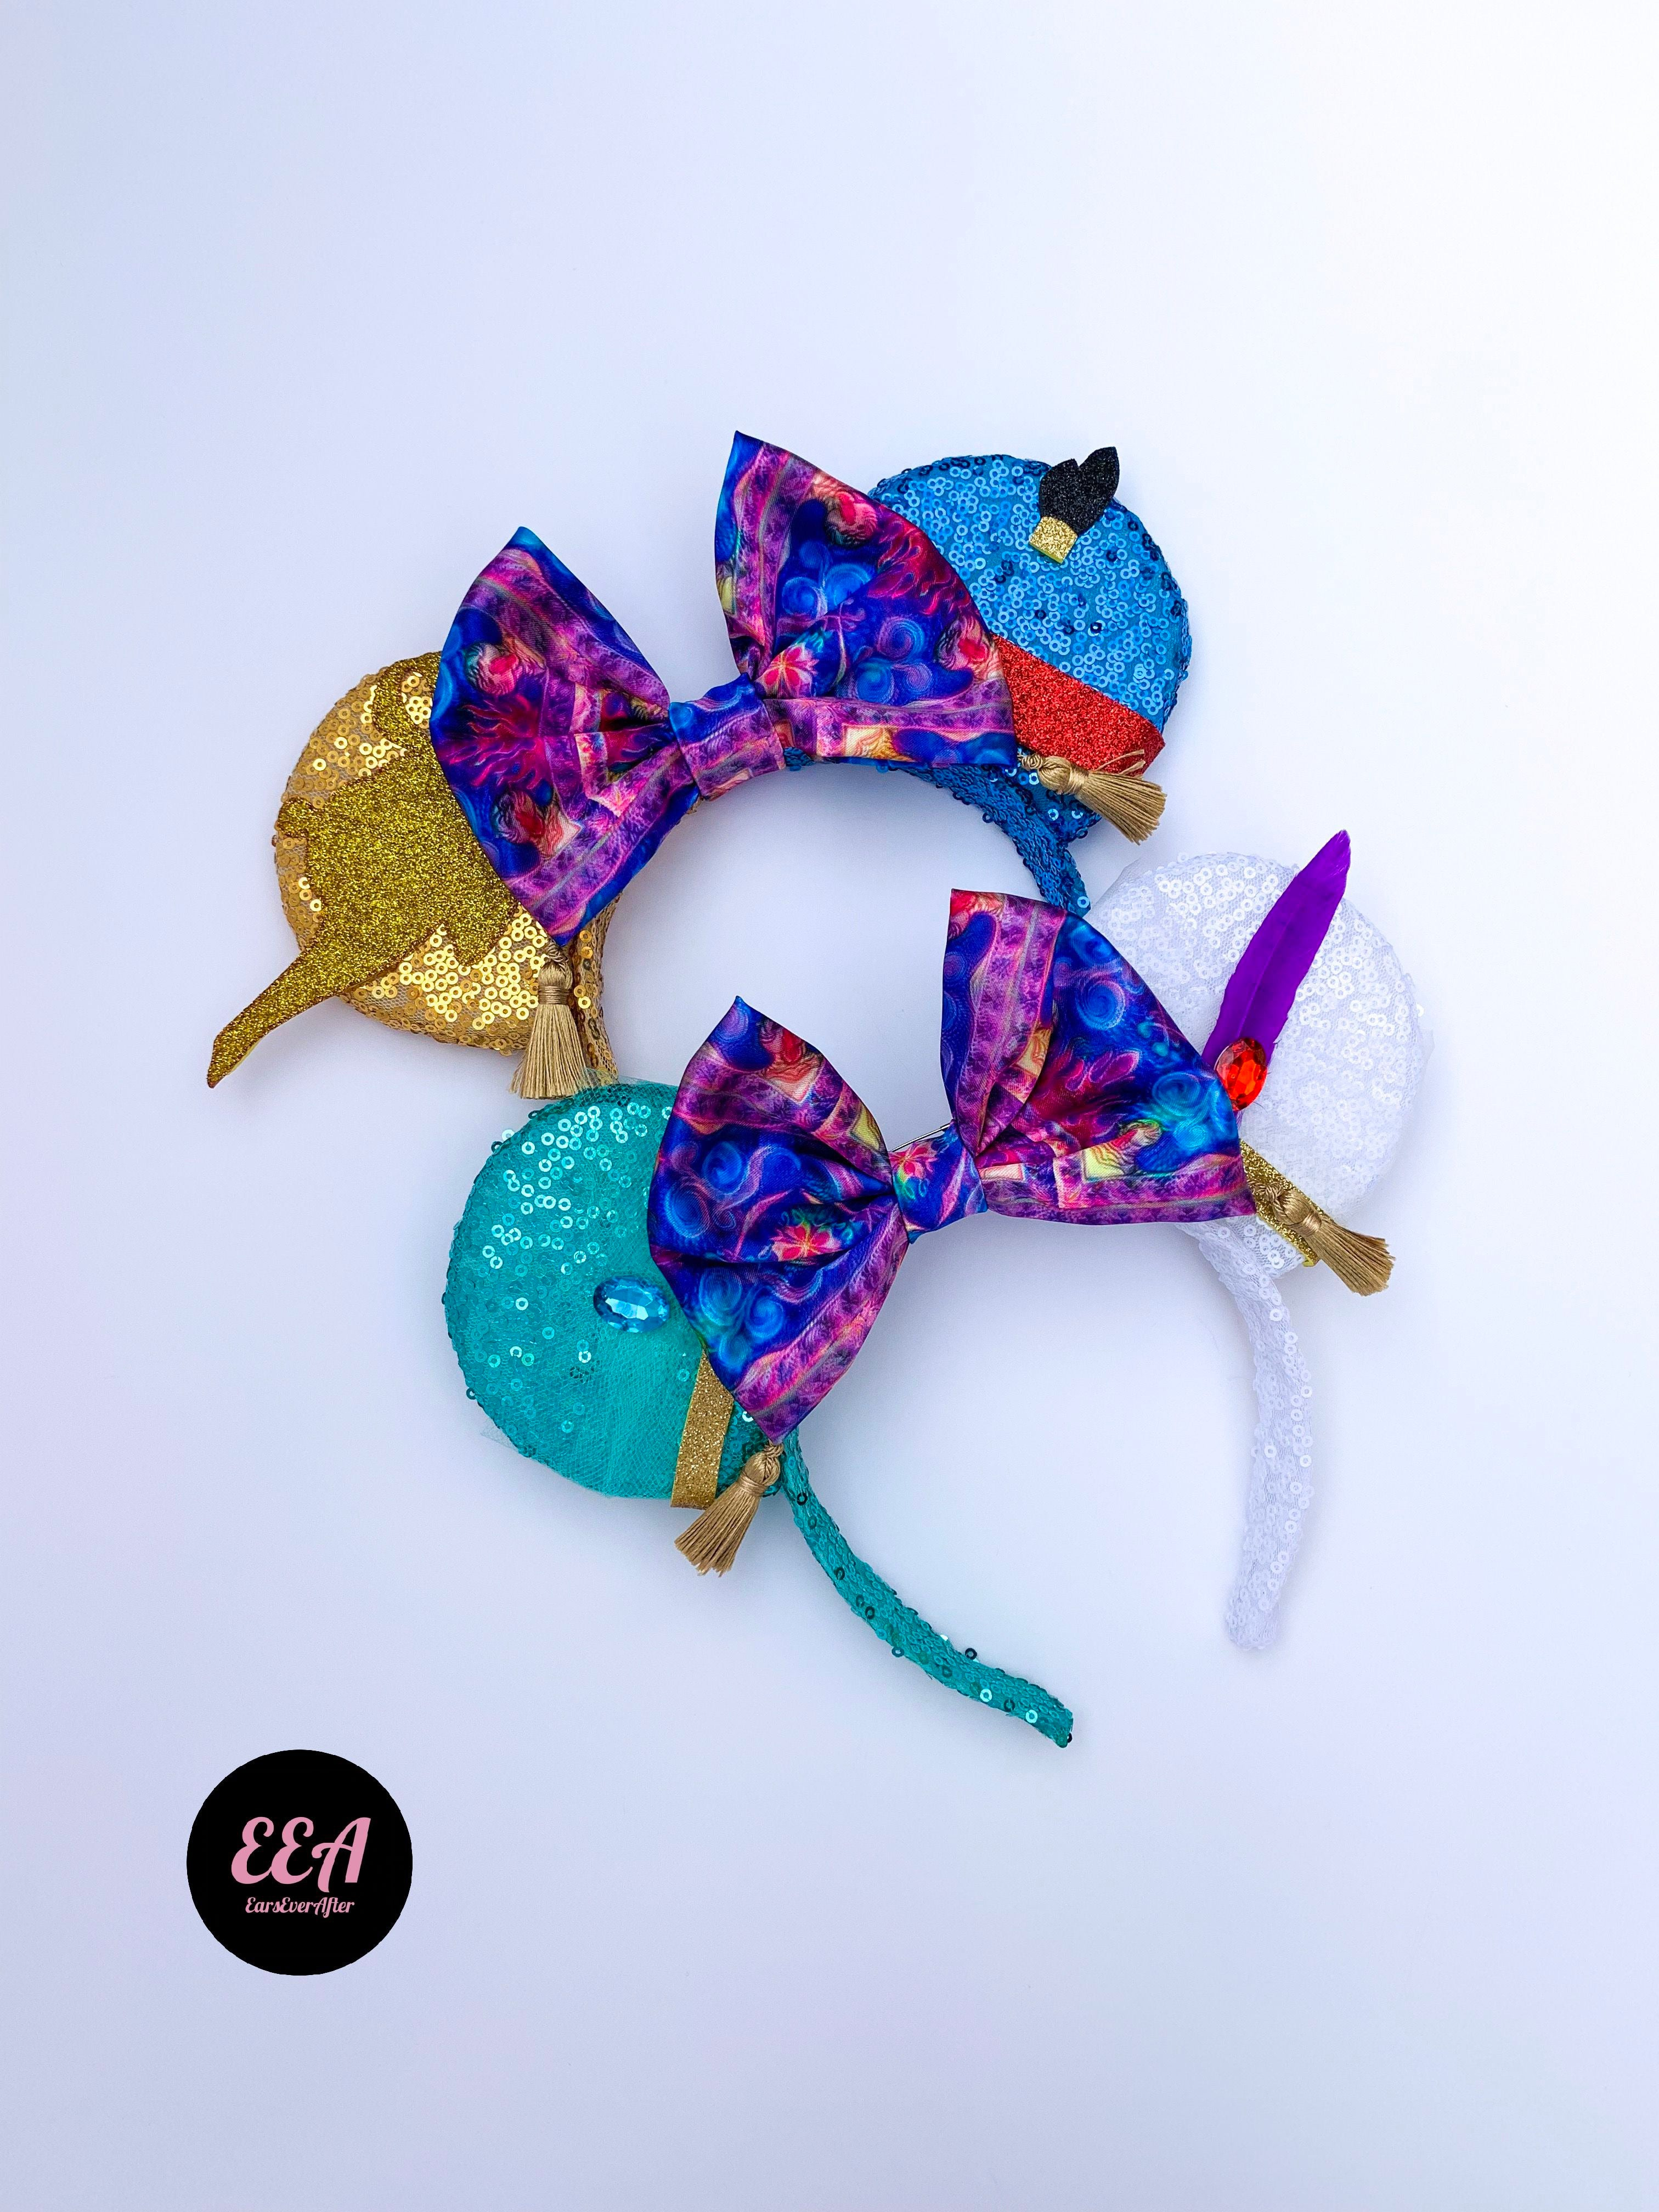 Ears Ever After, Disney Ears, Minnie Mouse Ears, Mickey Ears, Custom Mickey Ears, Mouse Ears, UK Disney Ears, Minnie Ears, Mickey Ears, Aladdin Ears, Cave of Wonders, Jasmine Ears, Carpet Ears